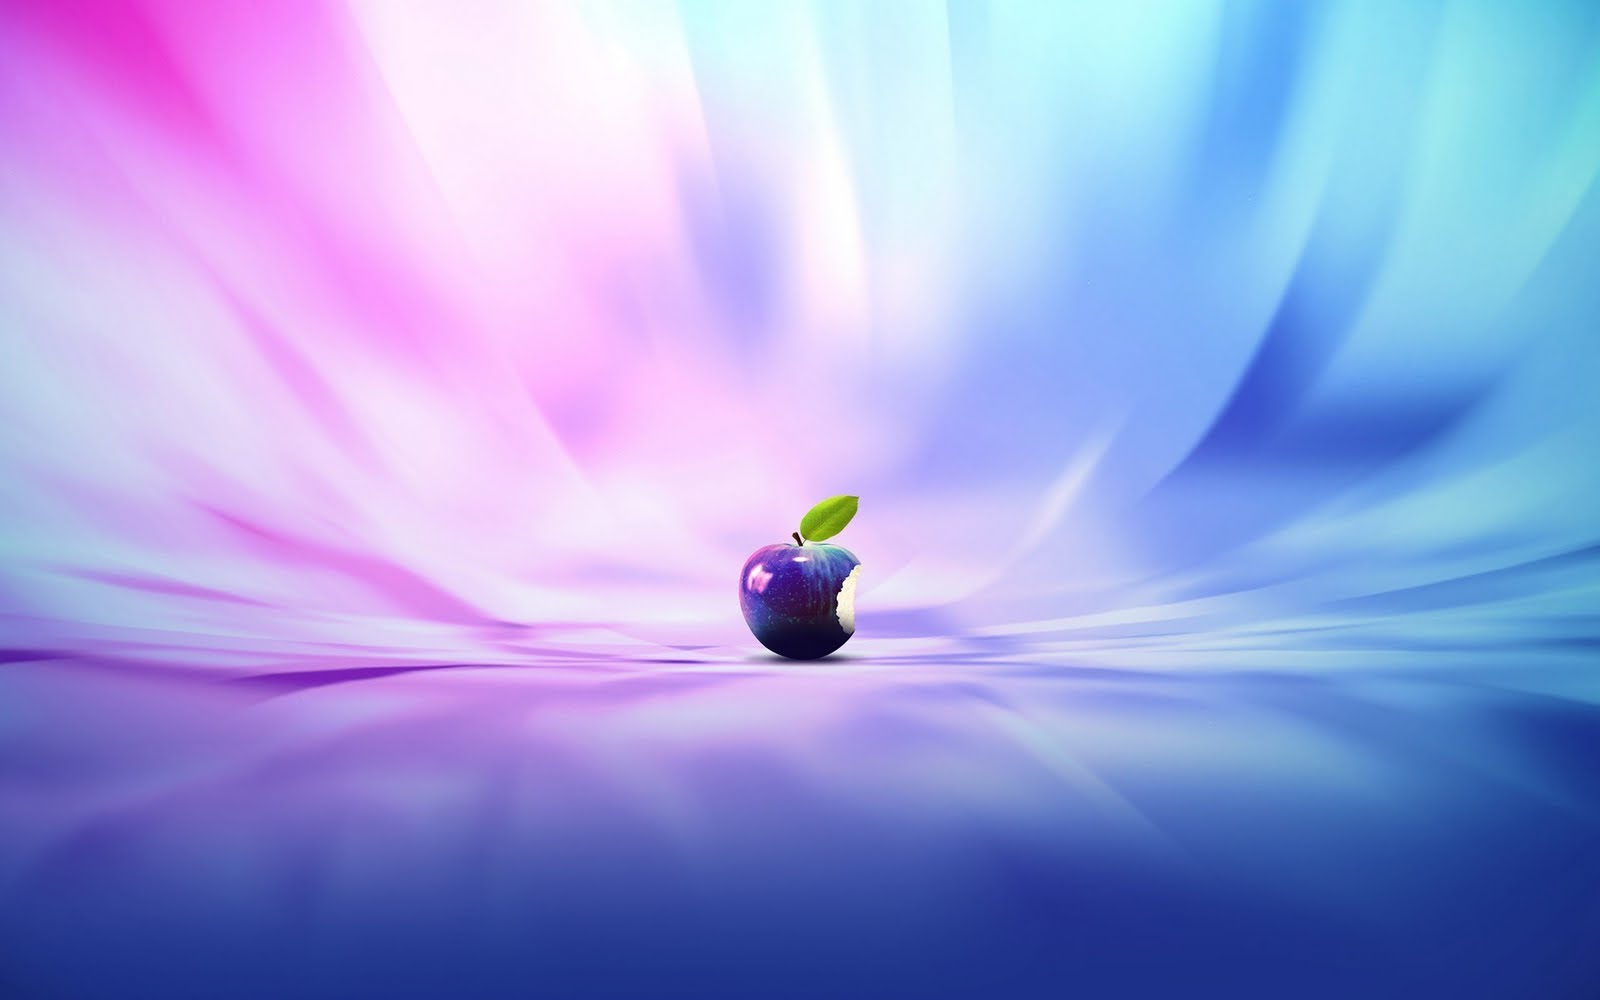 apple logo hd wallpapers radha krishna wallpapers